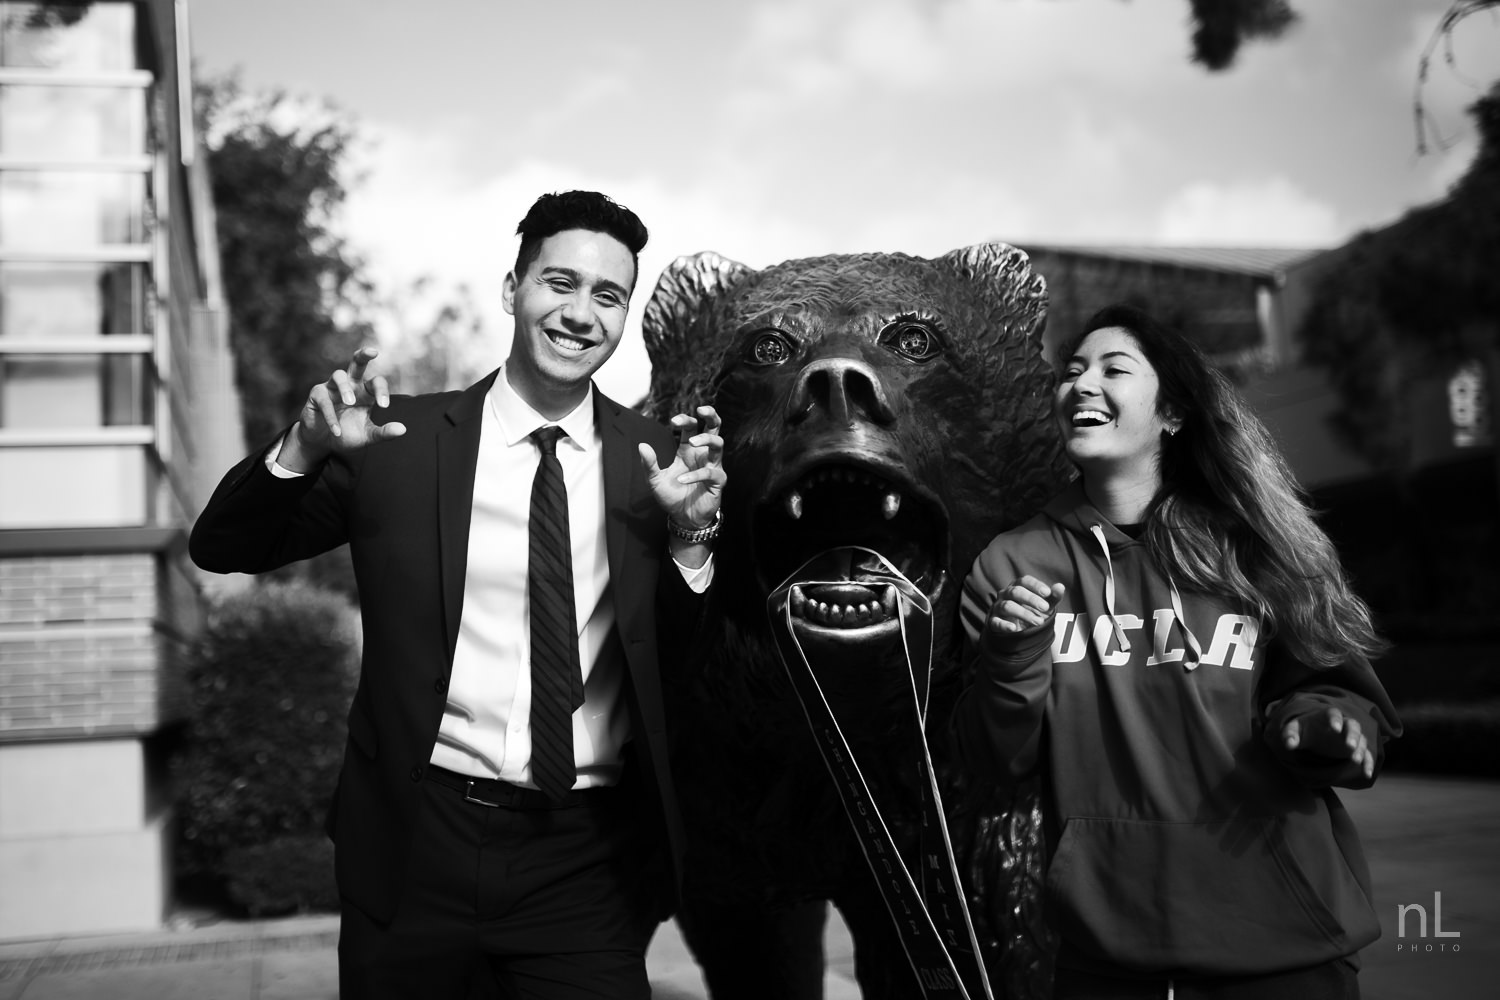 UCLA Class of 2019 graduate wearing suit and tie and graduation sash with girlfriend posing in front of Bruin Bear.